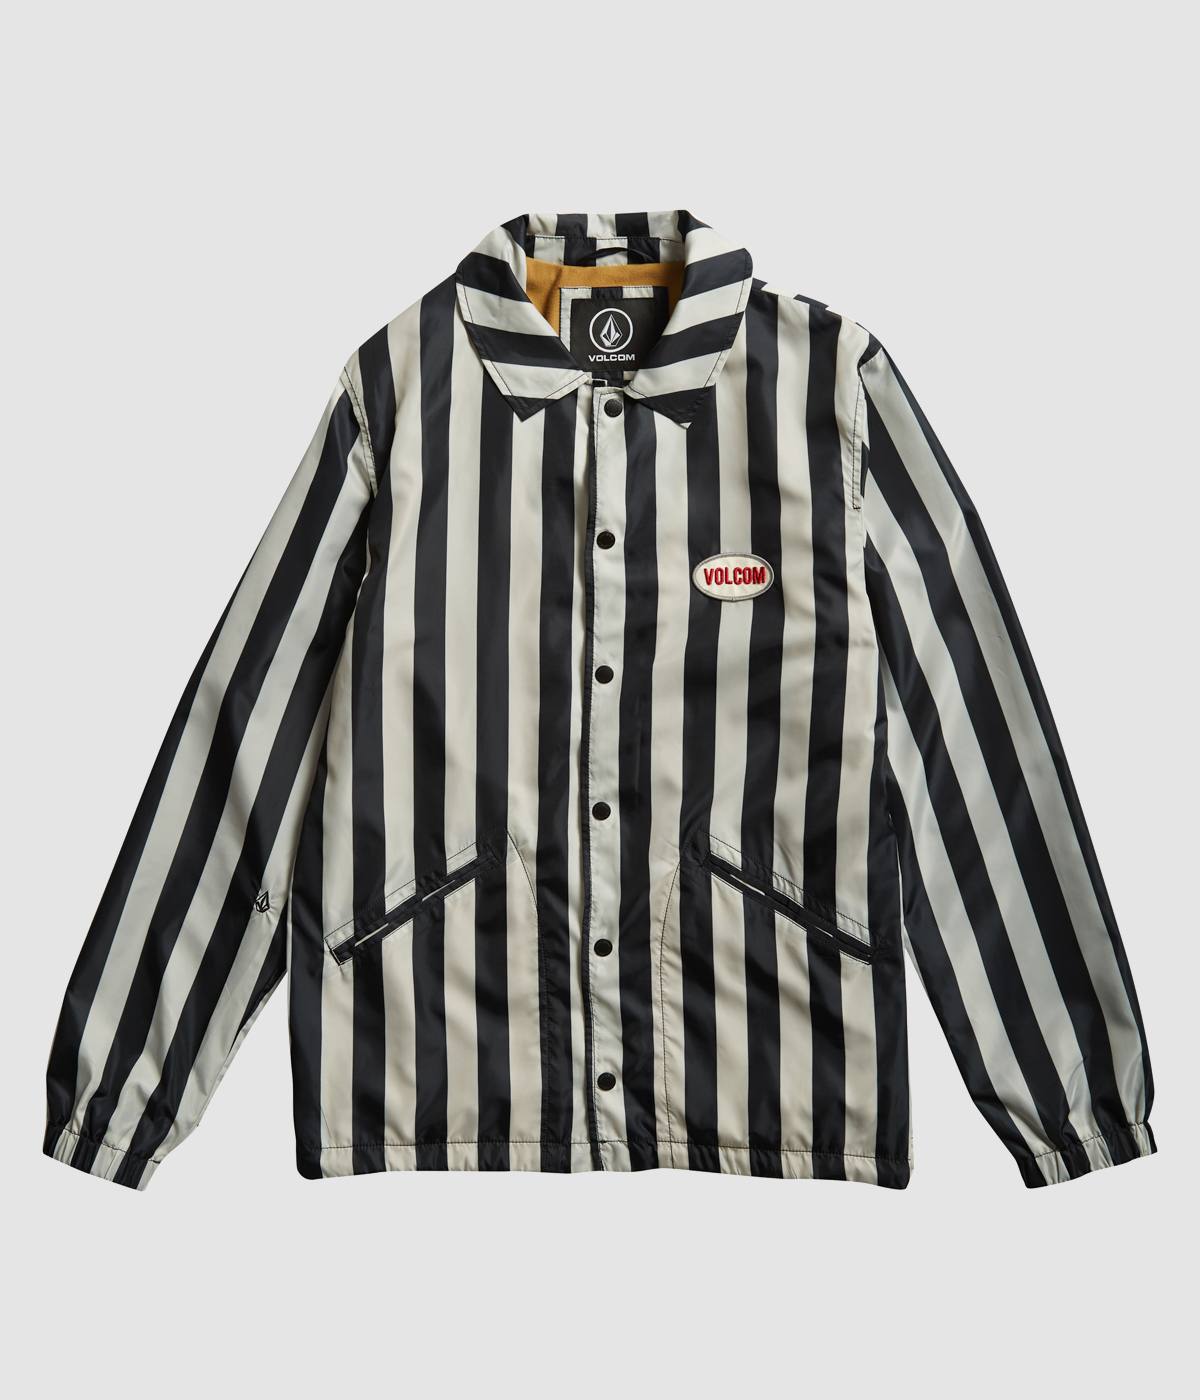 Volcom Brews Striped Coach Jacket in our Surfers' Christmas Gift Guide 2018